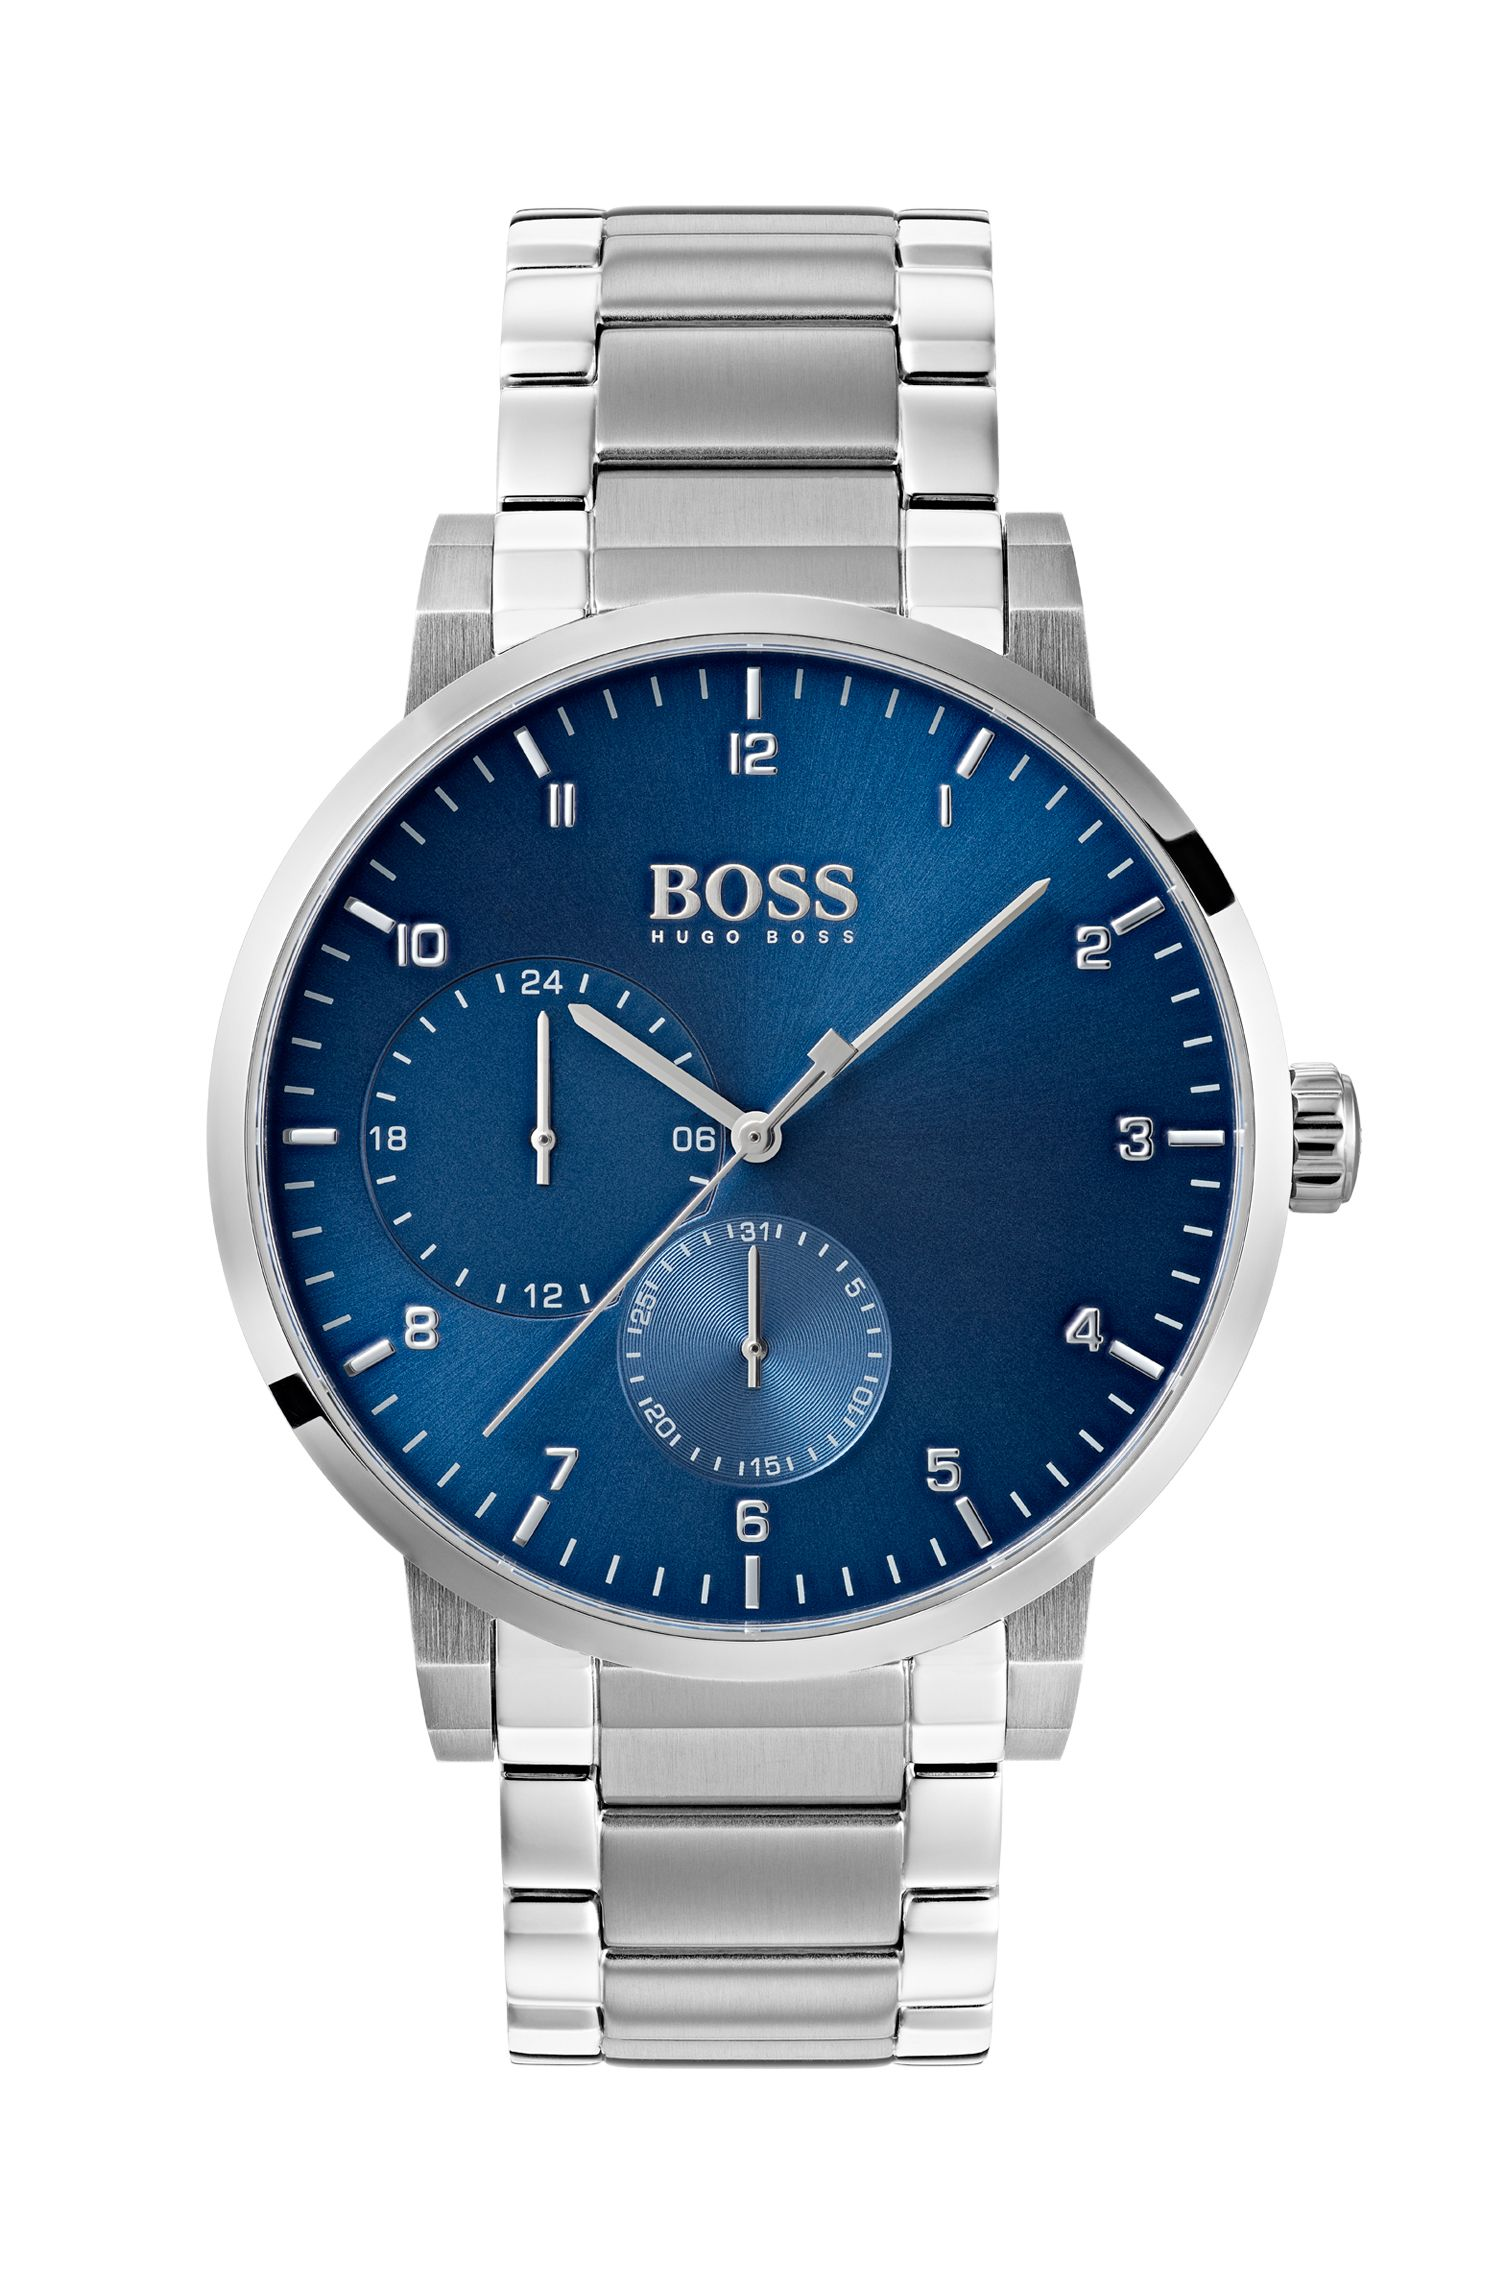 Stainless-steel watch with blue dial and link strap